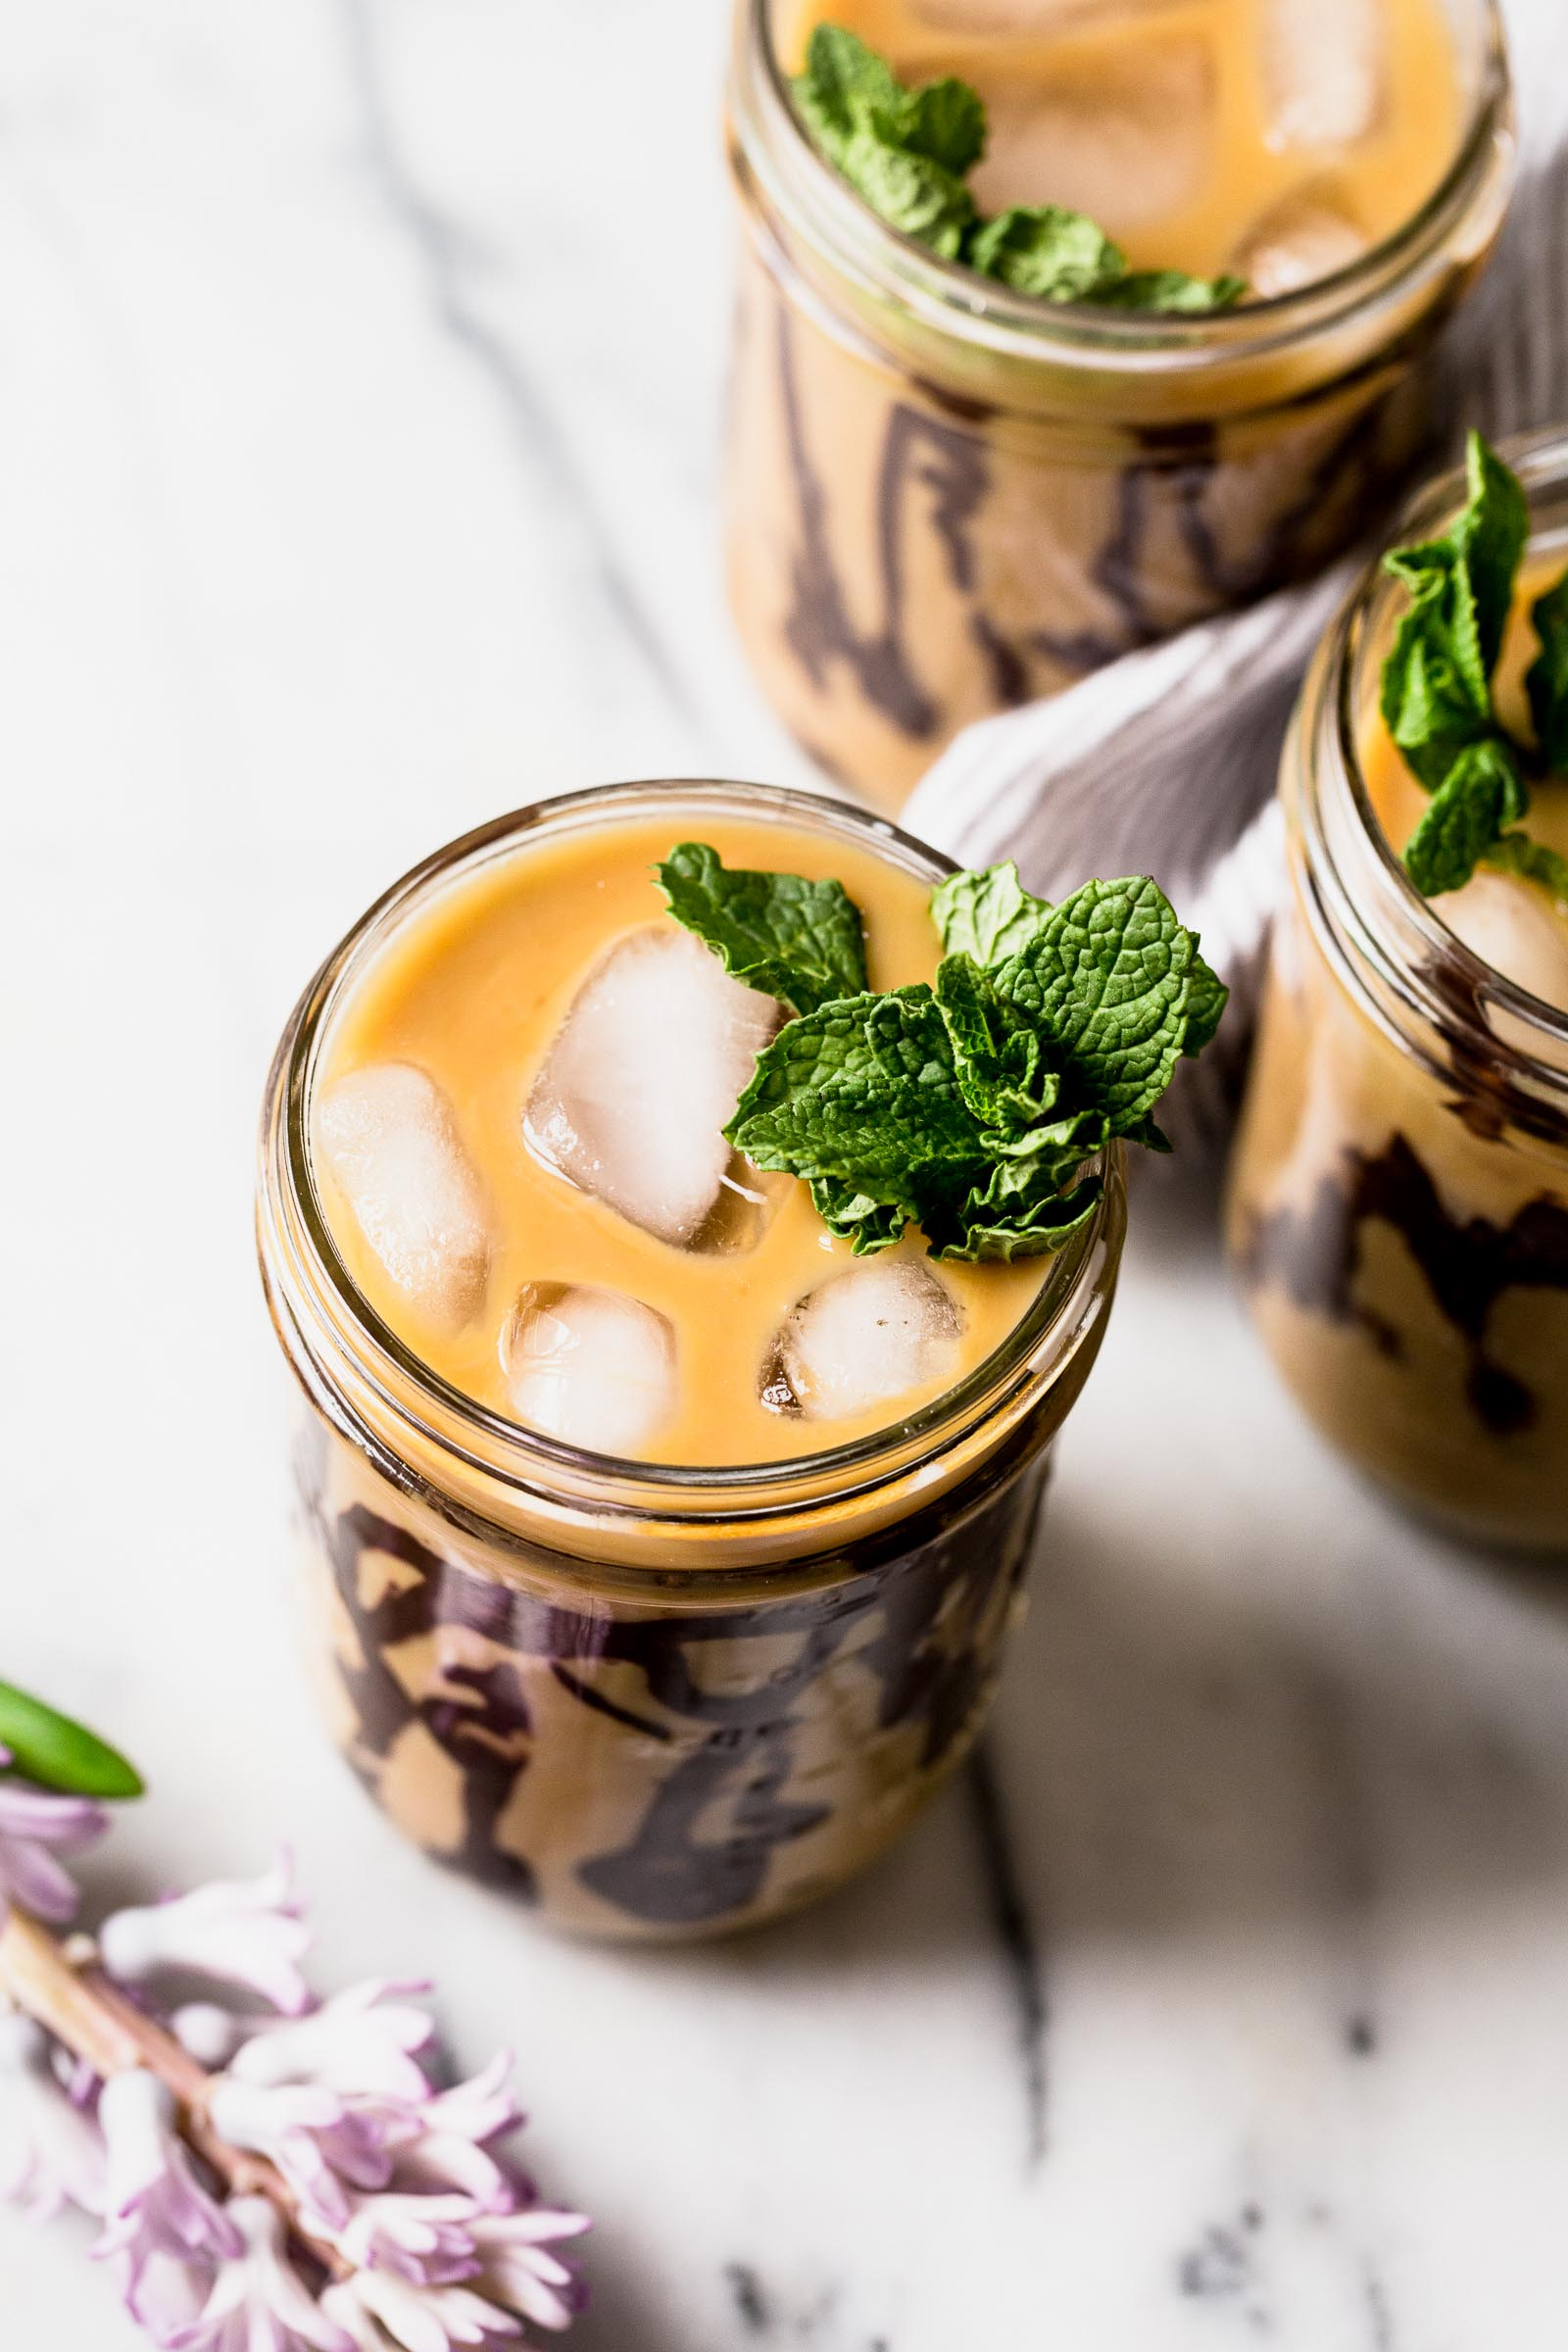 an easy & refreshing fresh mint cold brew iced coffee served with swirls of homemade dark chocolate syrup. the perfect springtime pick-me-up! #coldbrew #icedcoffee #minticedcoffee #dunkindonuts #dunkindonutsicedcoffee #easyicedcoffee #icedcoffeerecipe